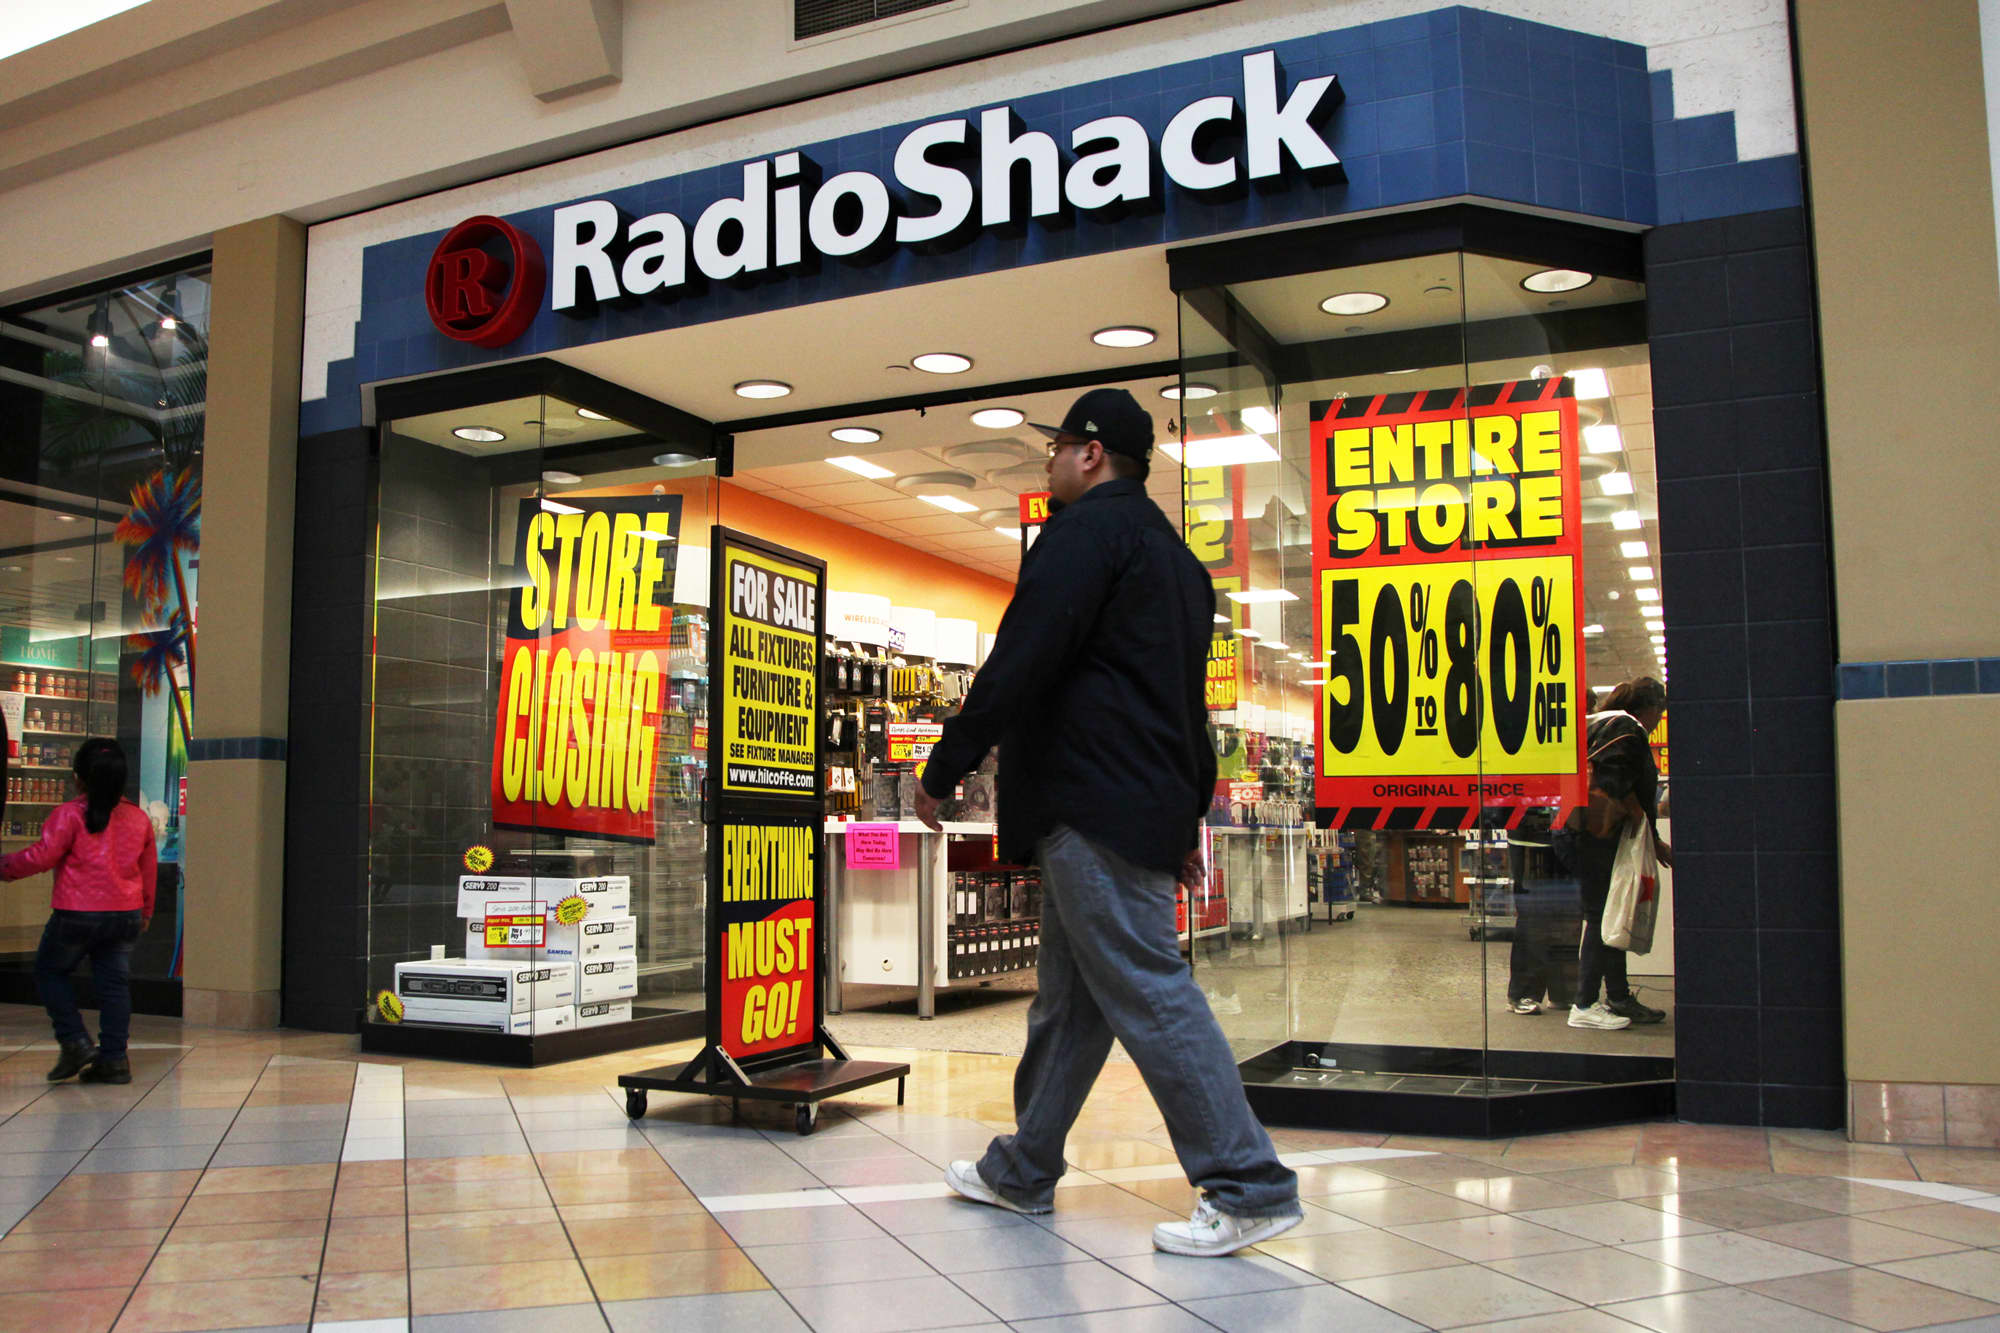 RadioShack makes a comeback to sell electronics in HobbyTown stores